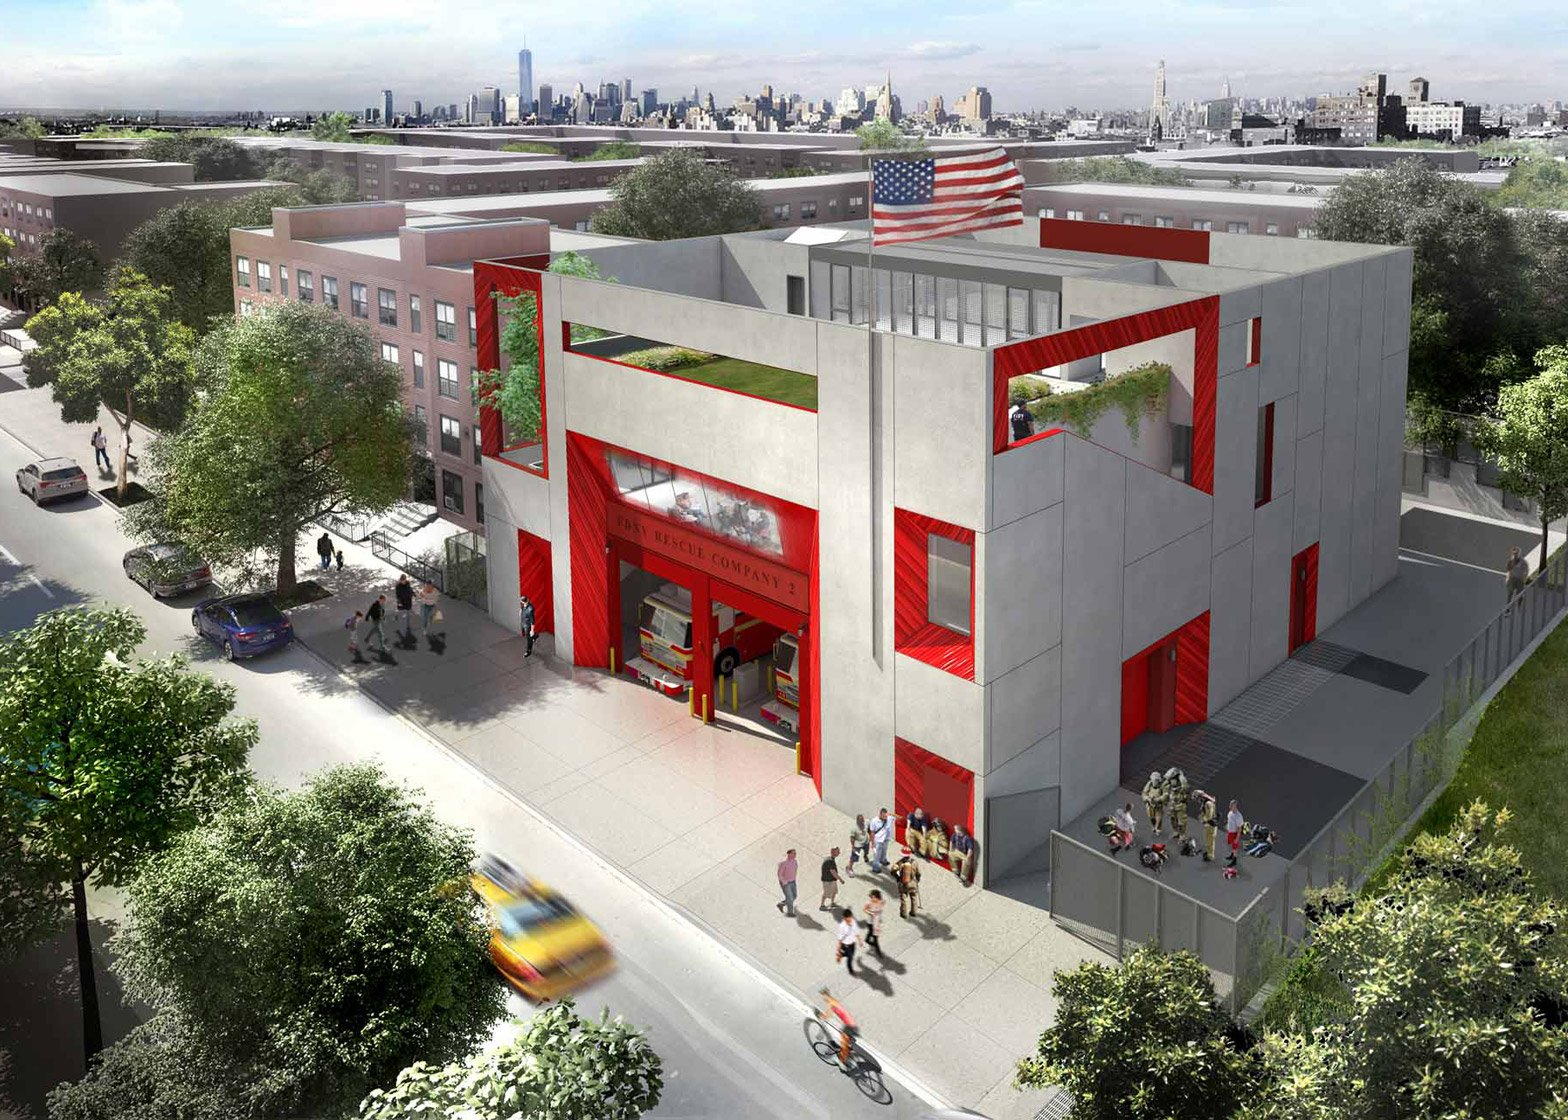 Studio Gang's Brooklyn fire station includes outdoor